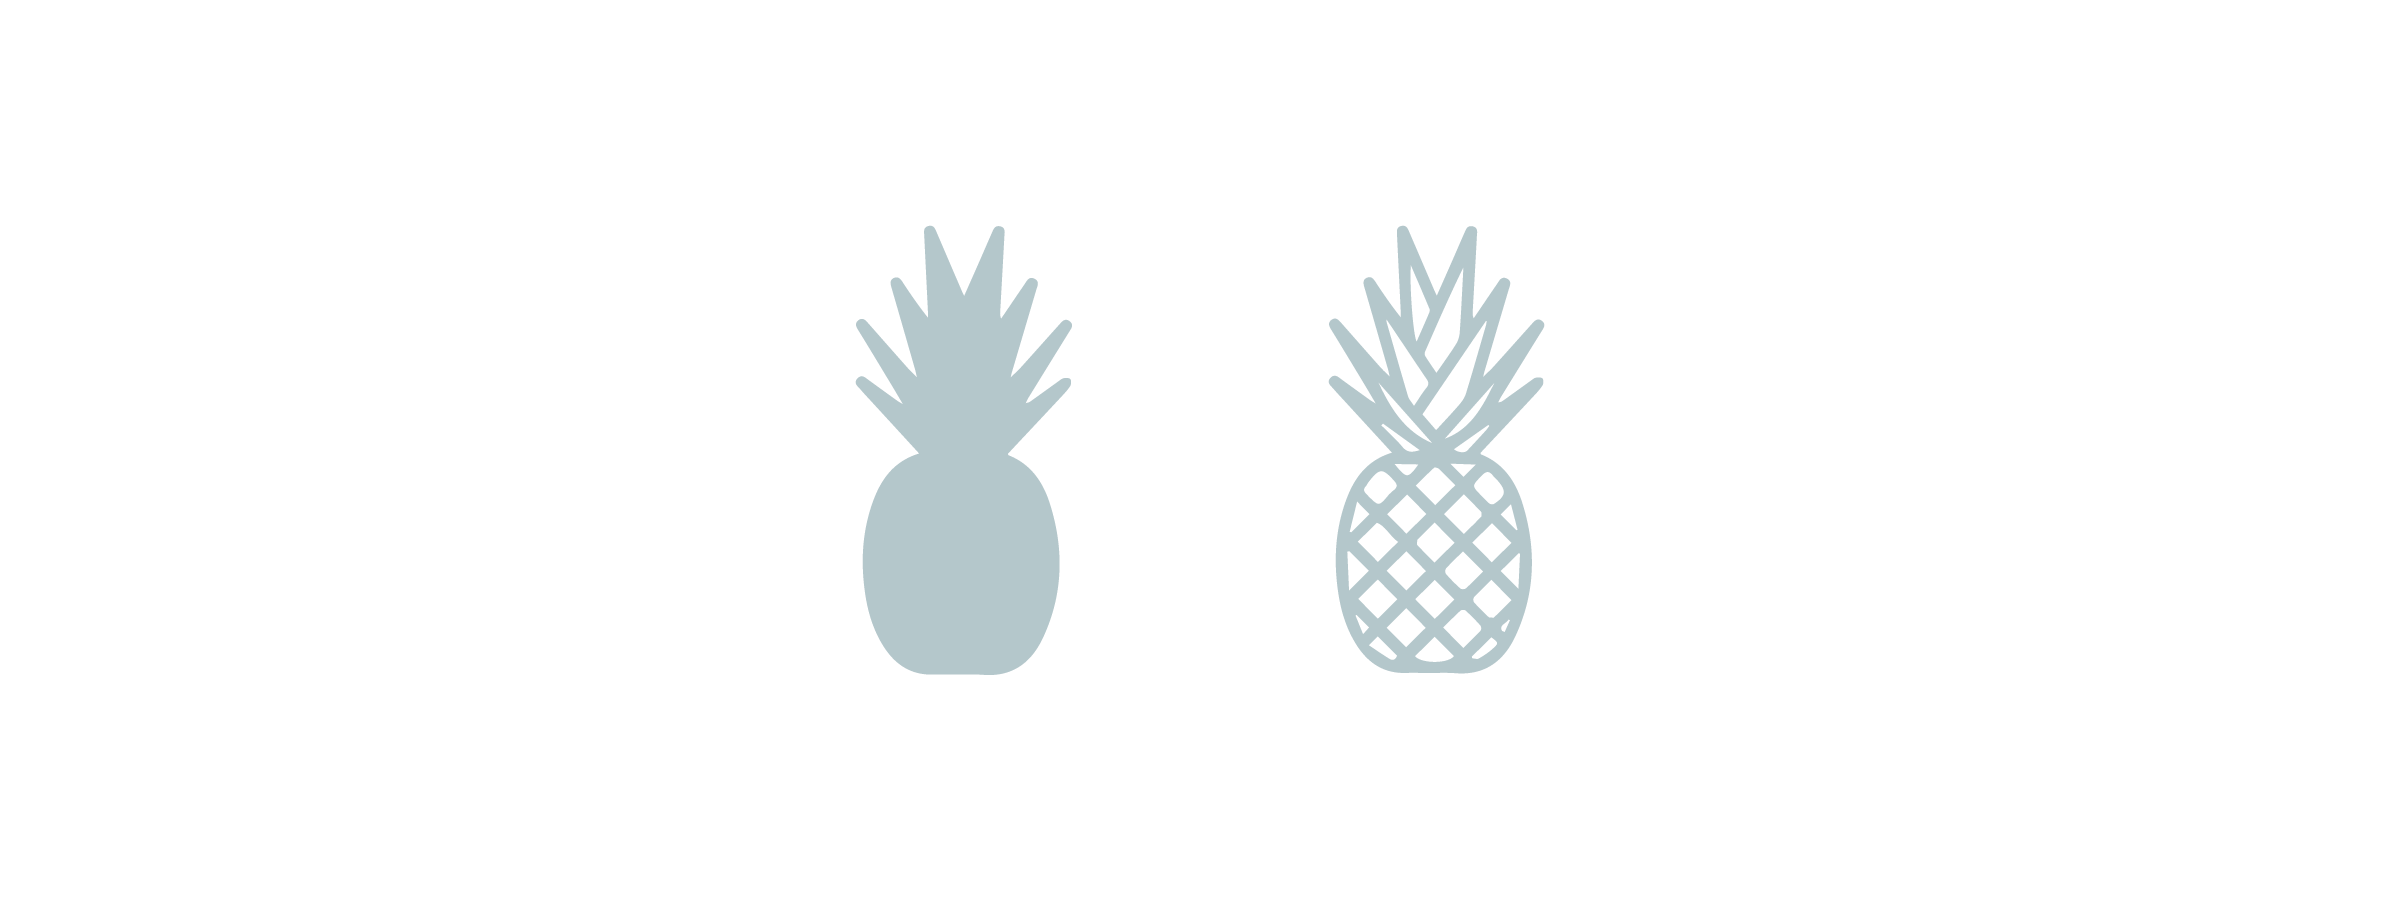 pineapples-01.png